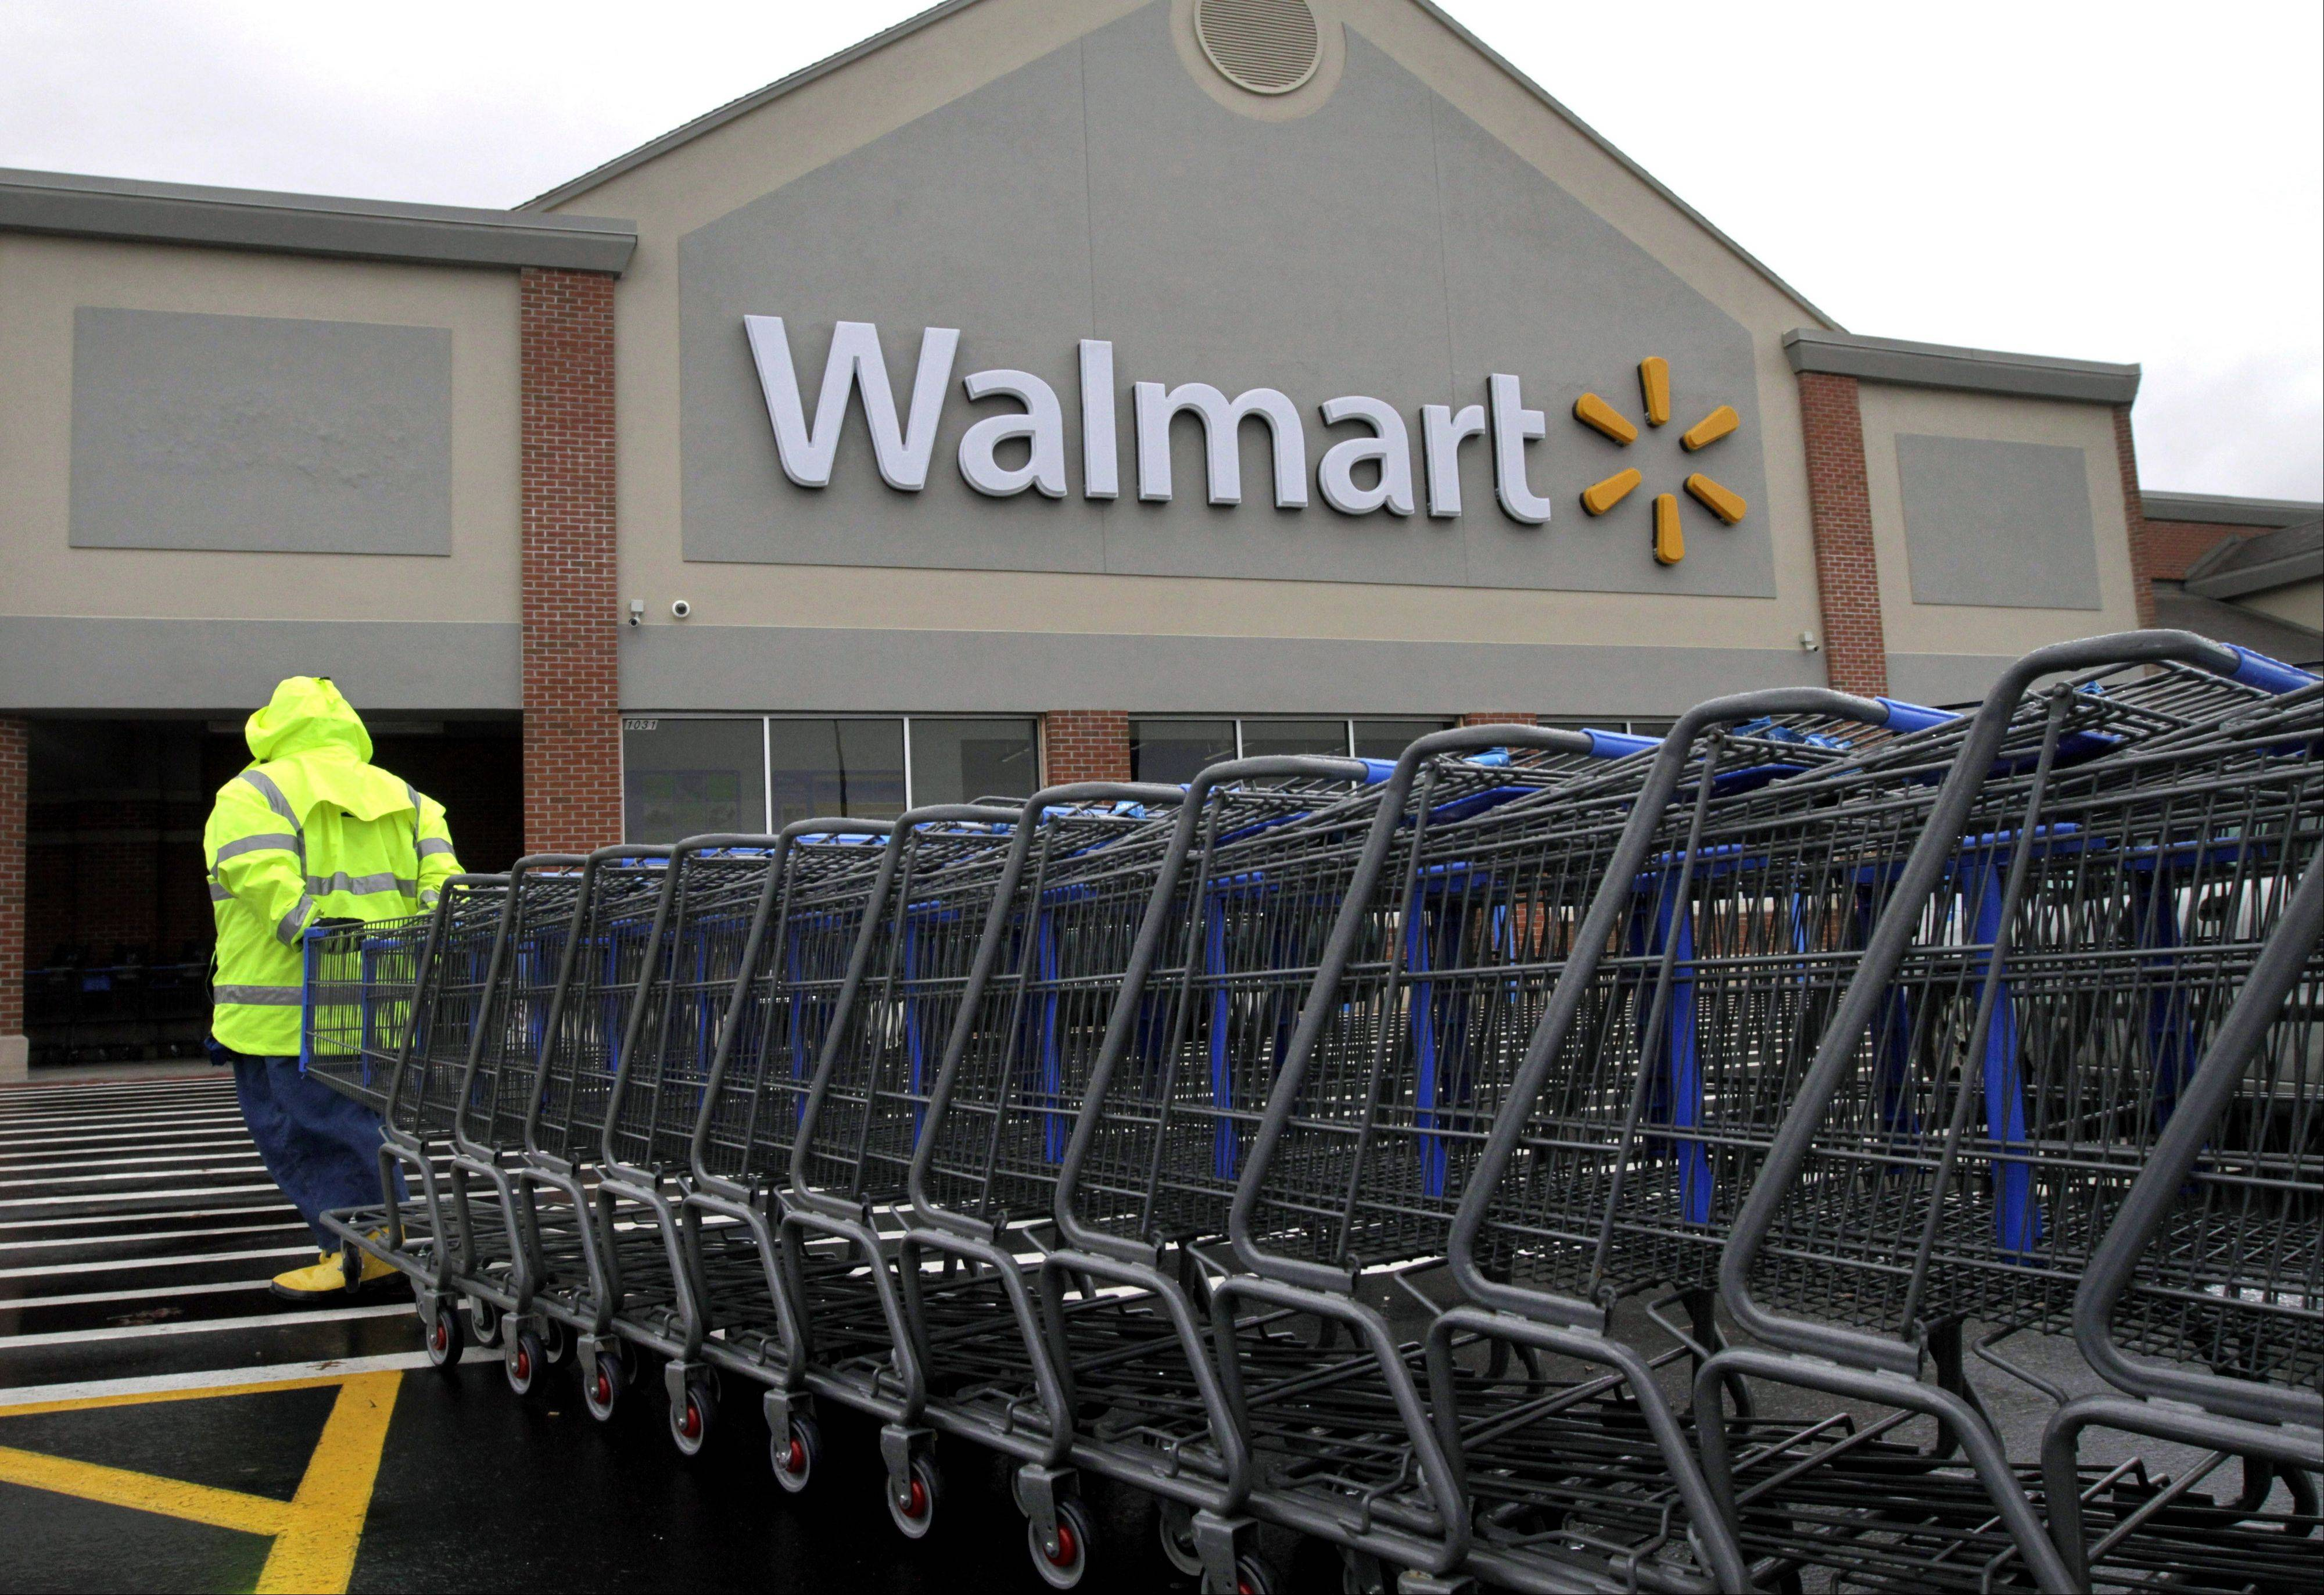 Wal-Mart Stores Inc. reported a 9 percent increase in net income for the third quarter, but revenue for the world's largest retailer fell below Wall Street forecasts as its low-income shoppers continue to grapple with an uncertain economy.